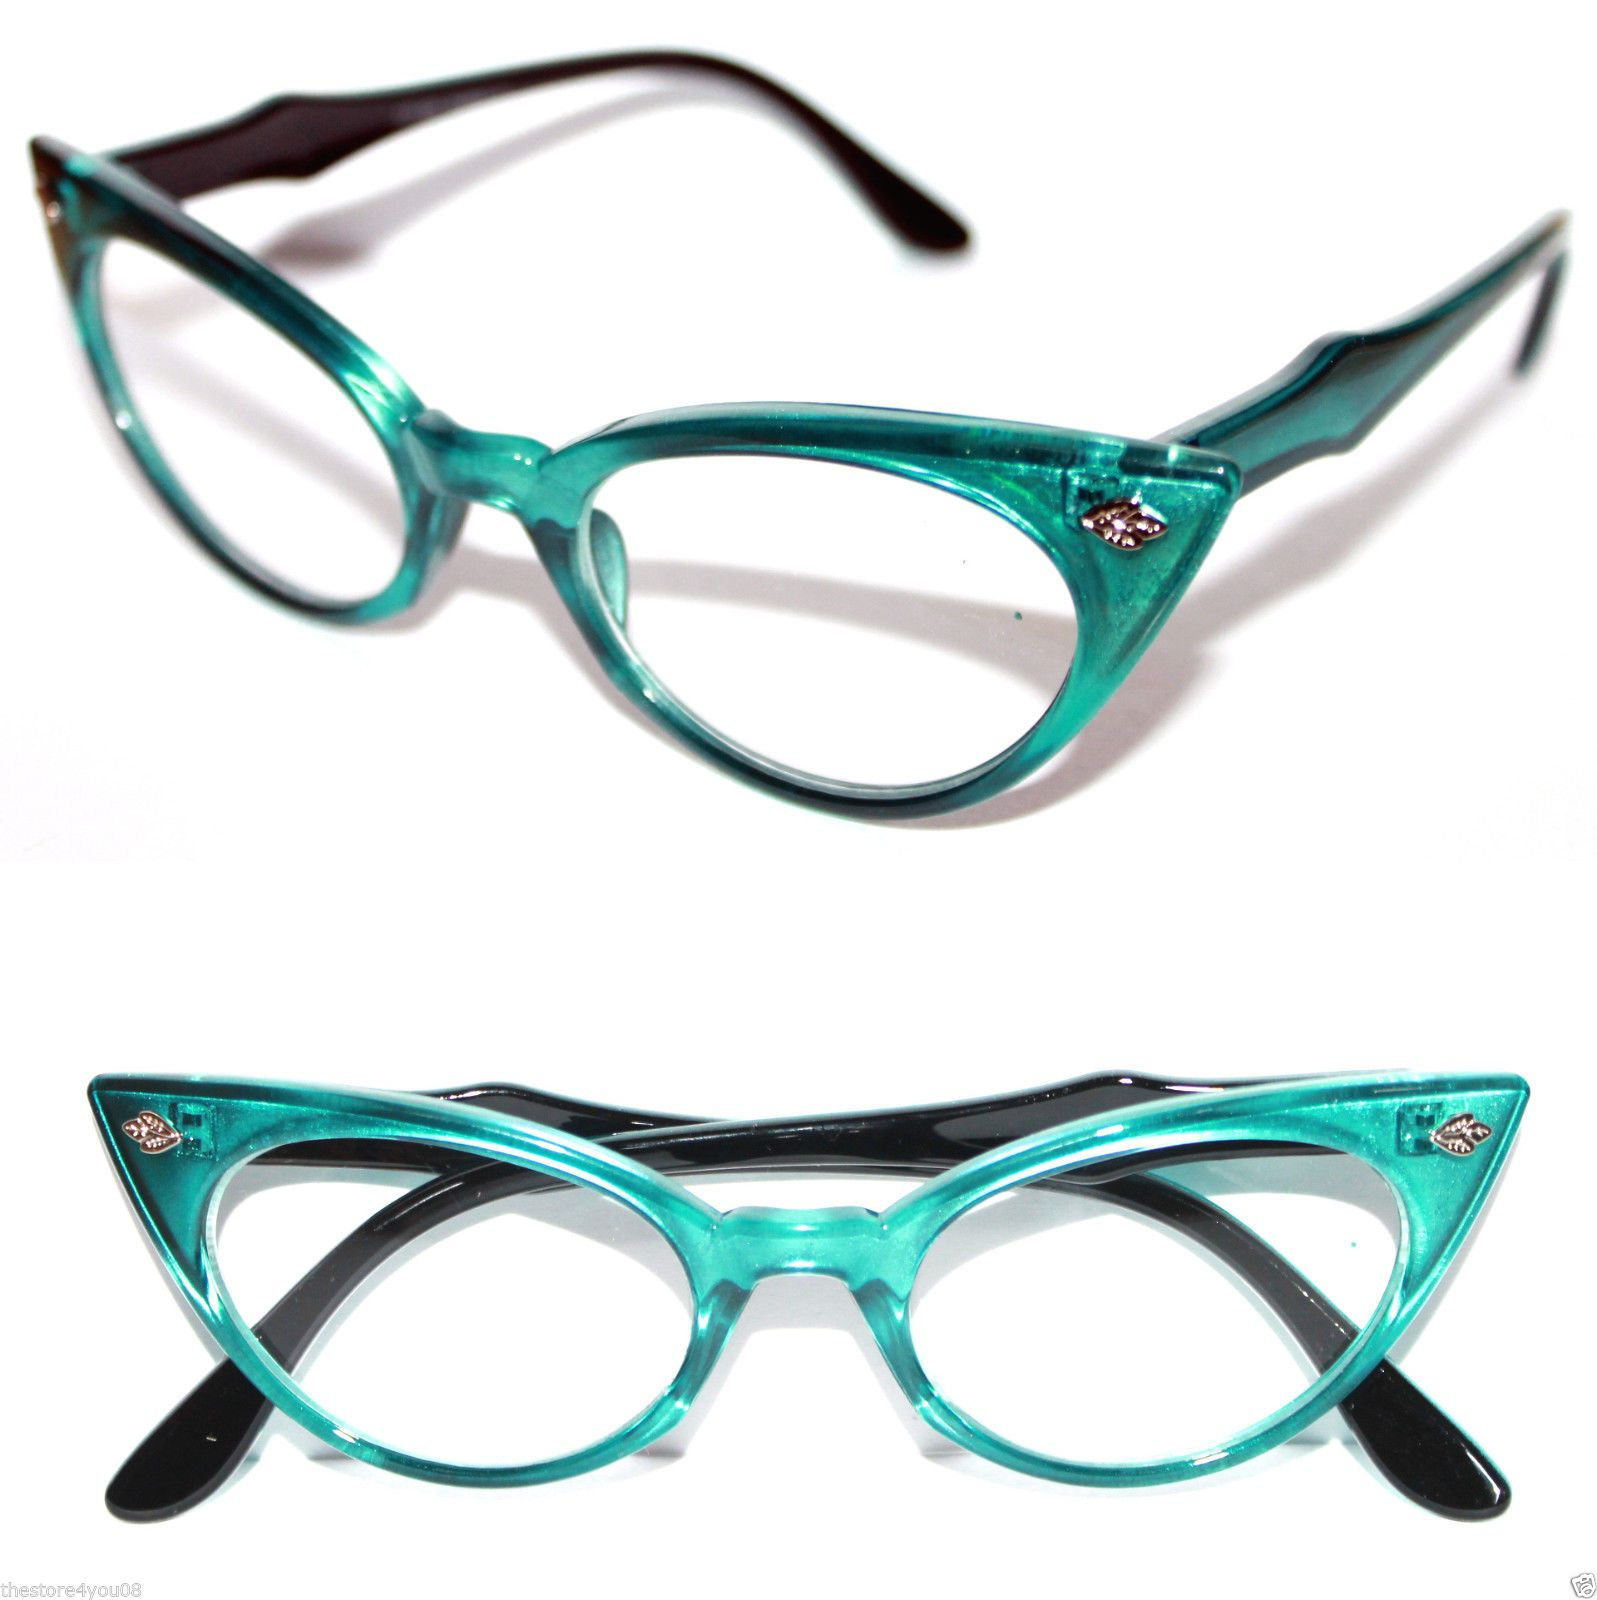 792221cb36 Cat Eye Vintage Glasses Frame 50 s Cateye Small Nerd Turquoise Green Black  318